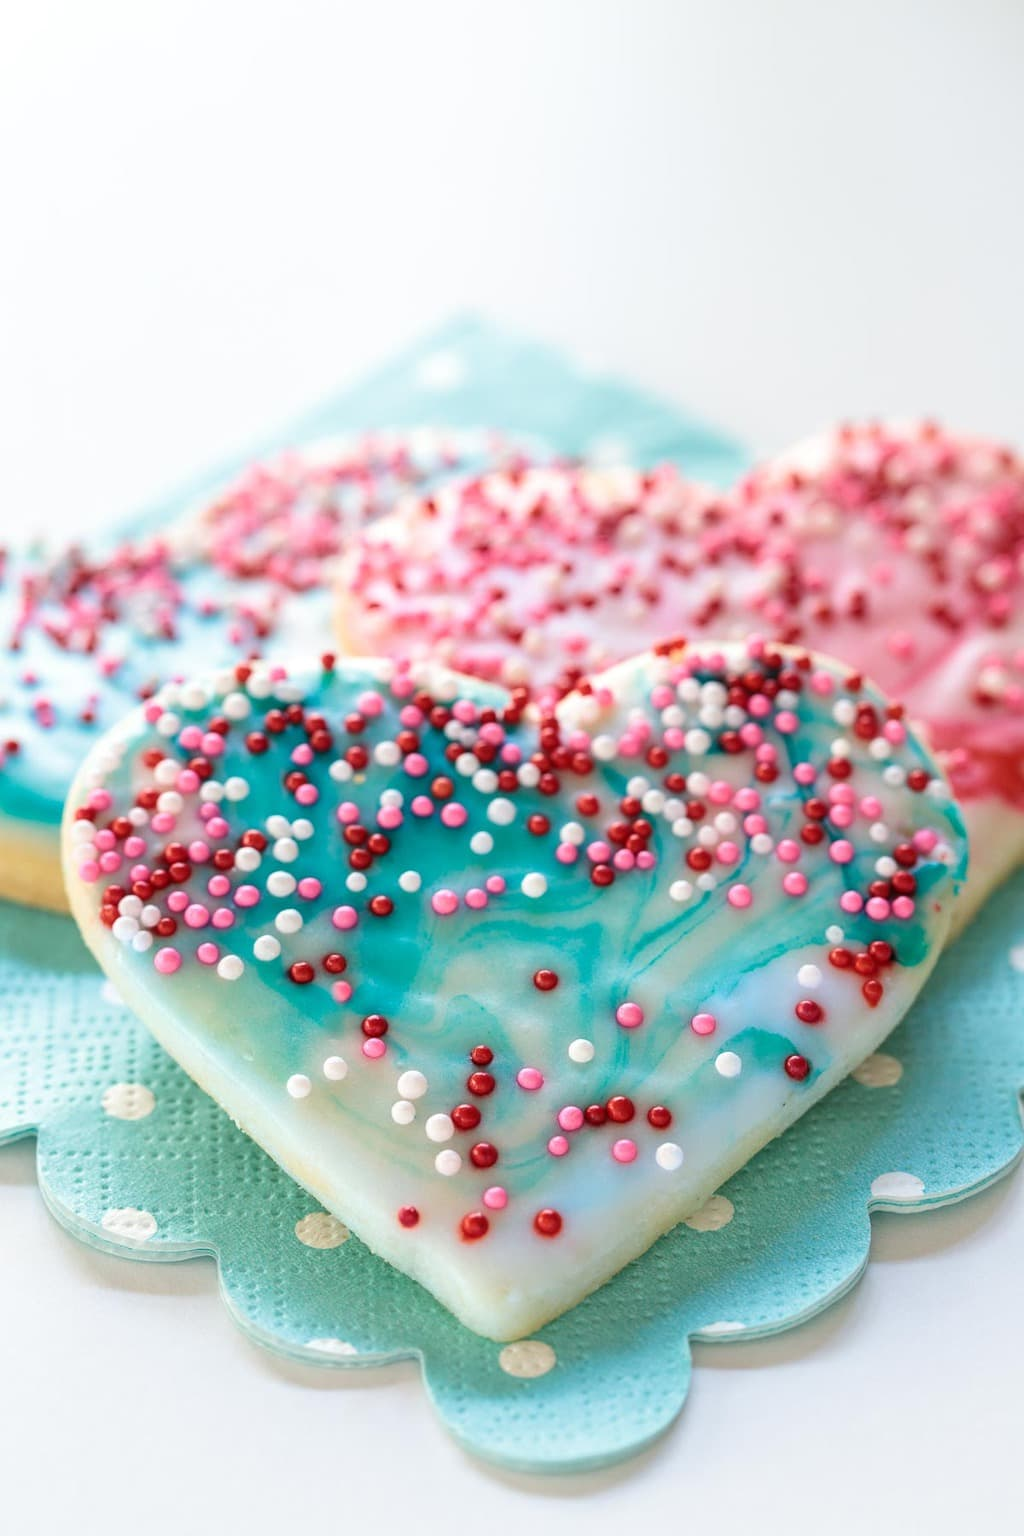 Overhead photo of Easy Decorated Valentine's Cookies on a turquoise dotted napkin.